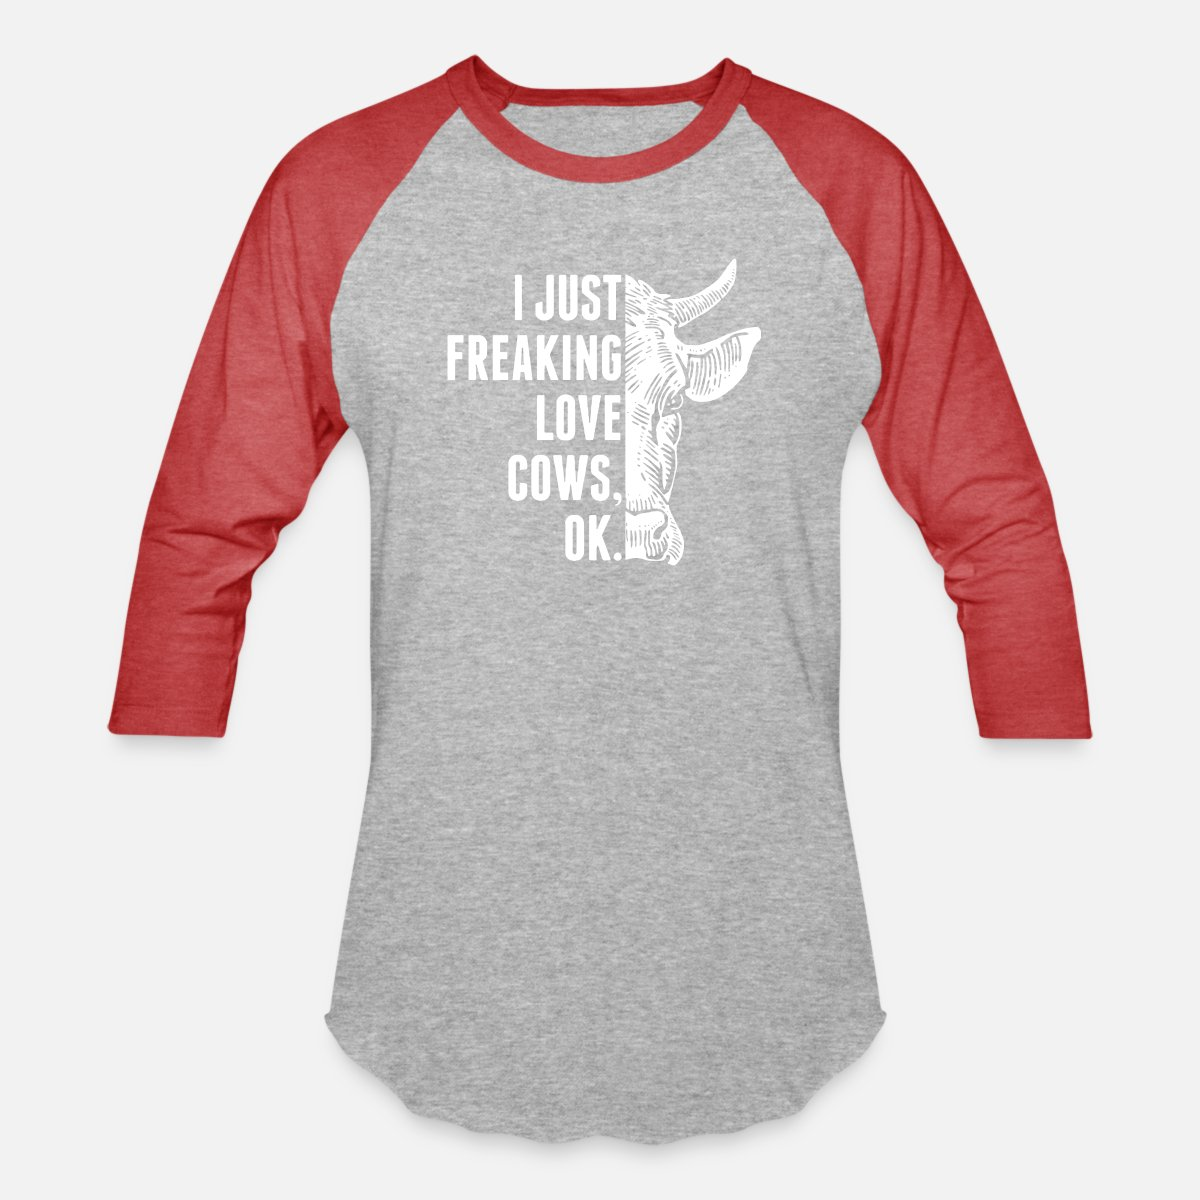 I Just Freaking Love Goats Ok Unisex Boys Girls Long Sleeve Crew Neck Cotton T-Shirts Pullover Shirt for 2-6T Baby